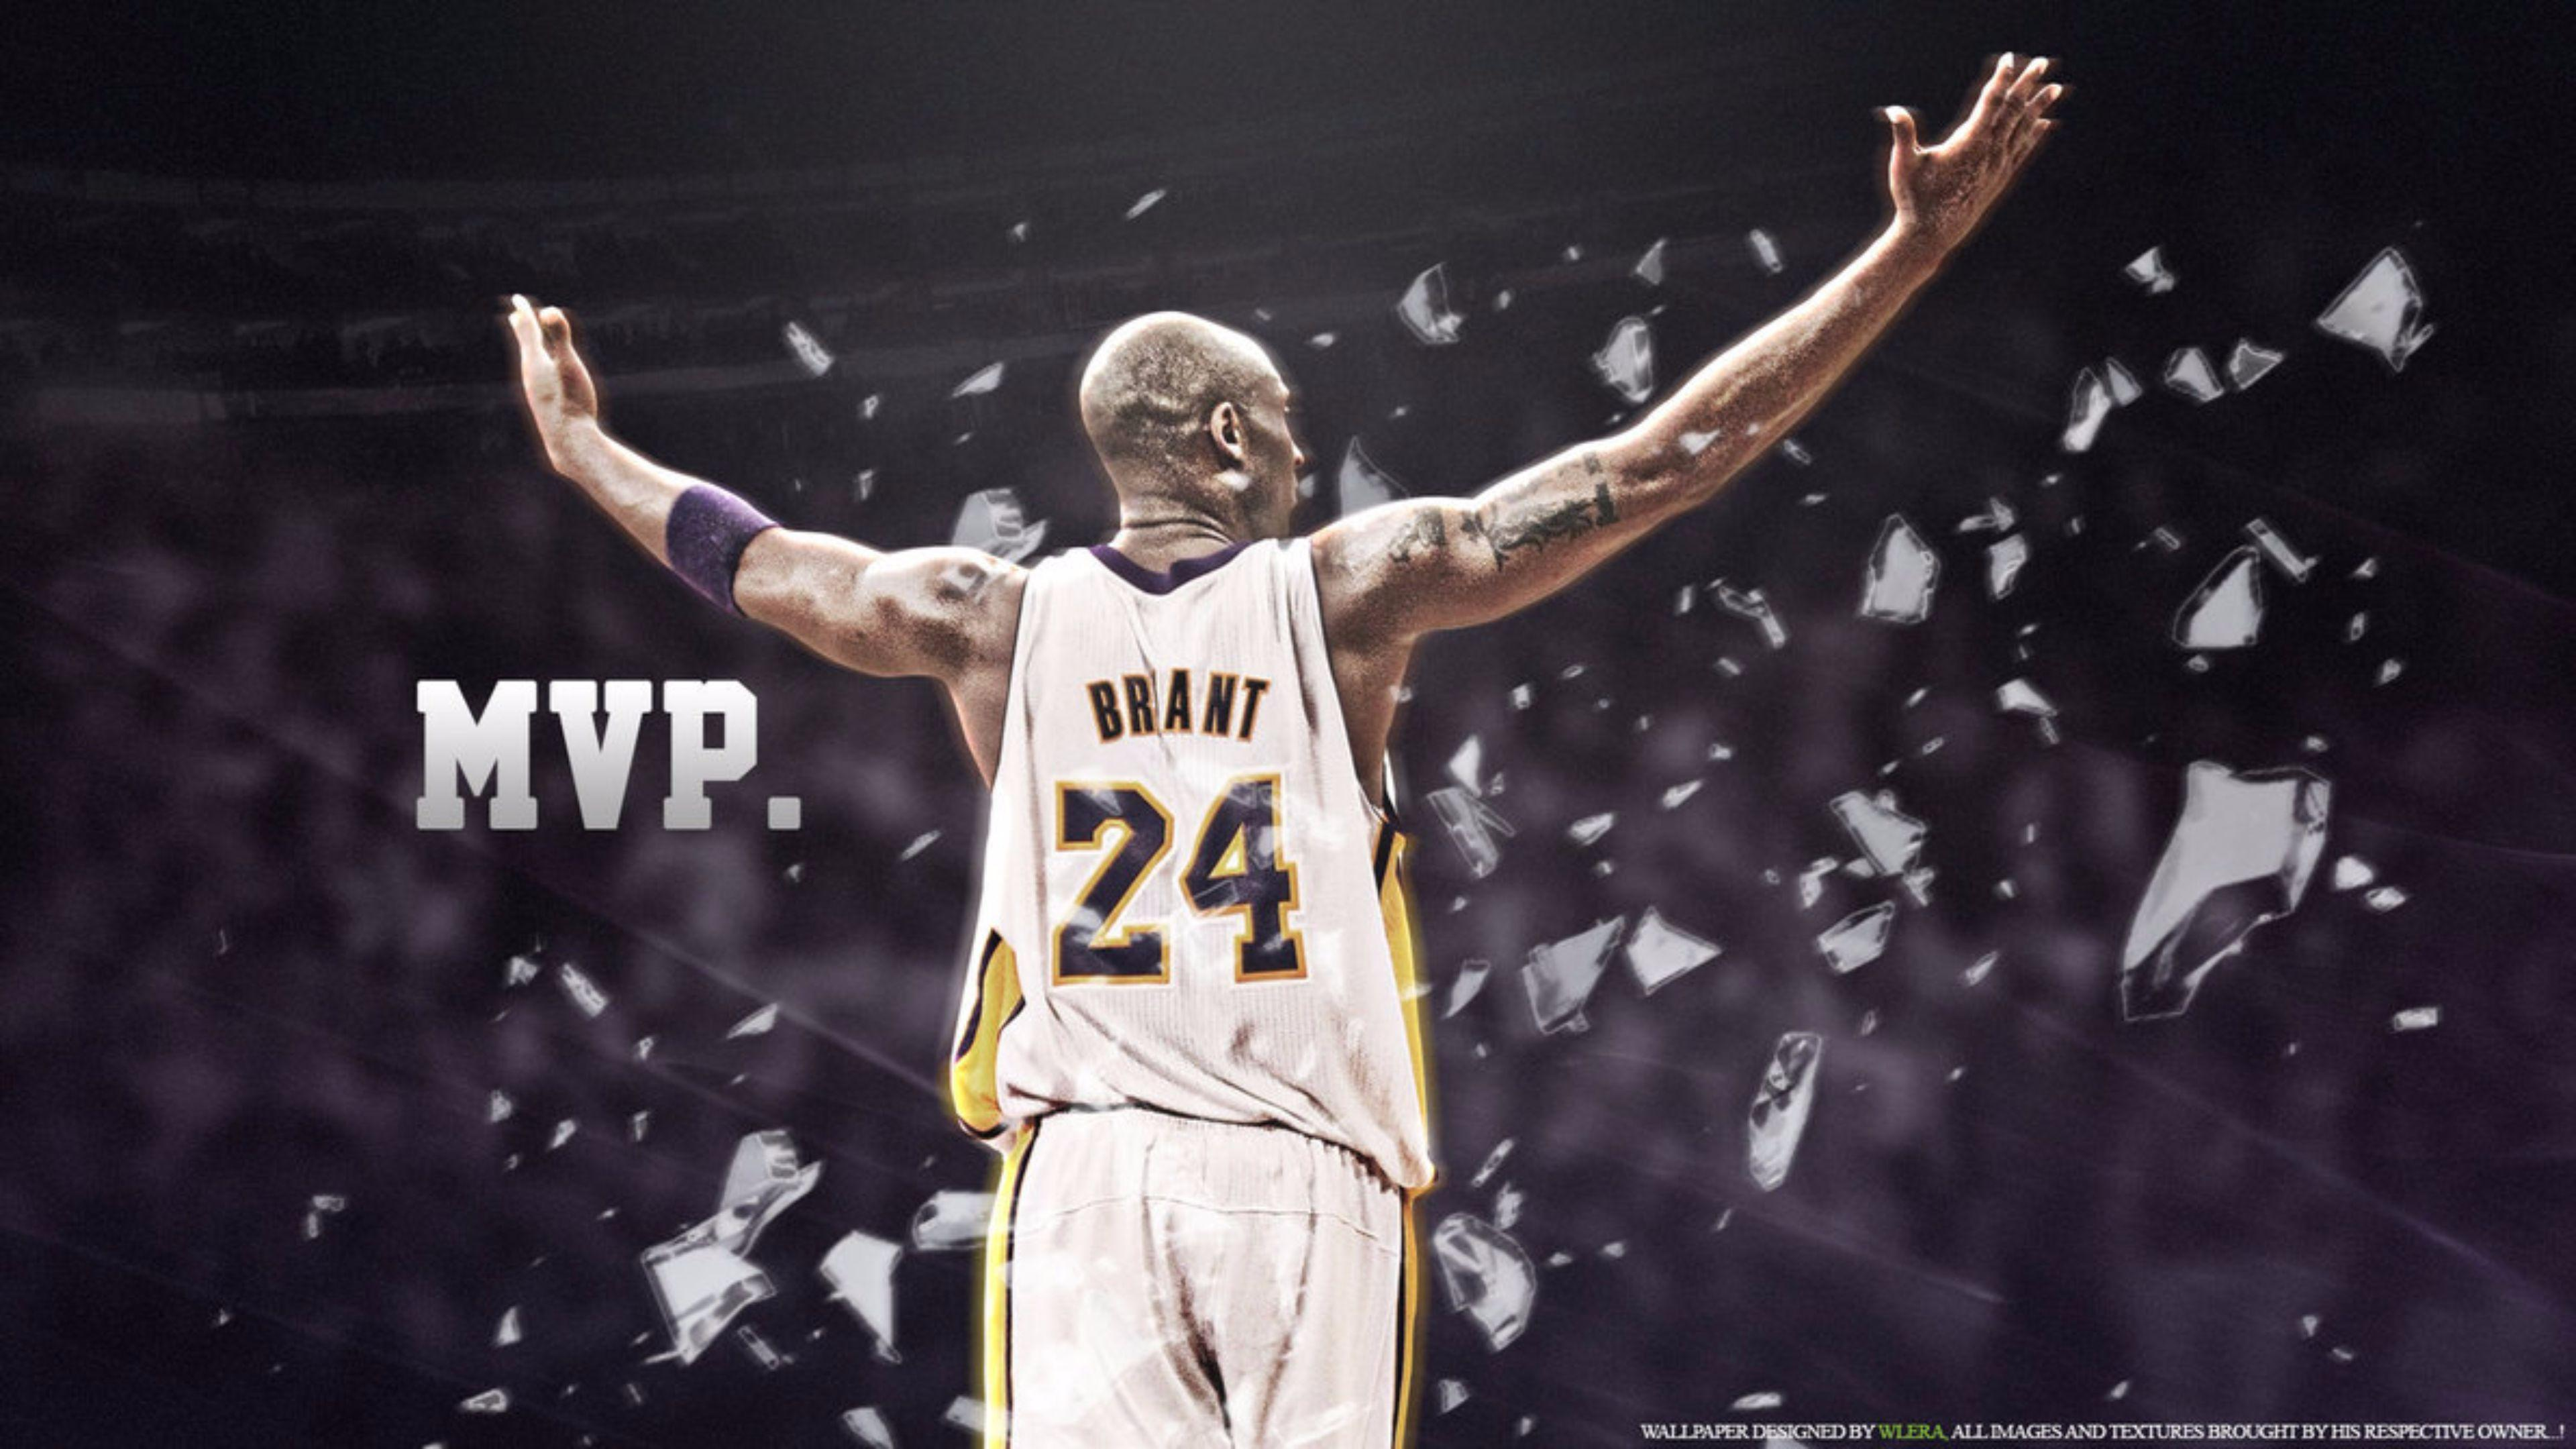 kobe bryant wallpaper 2016 - photo #26